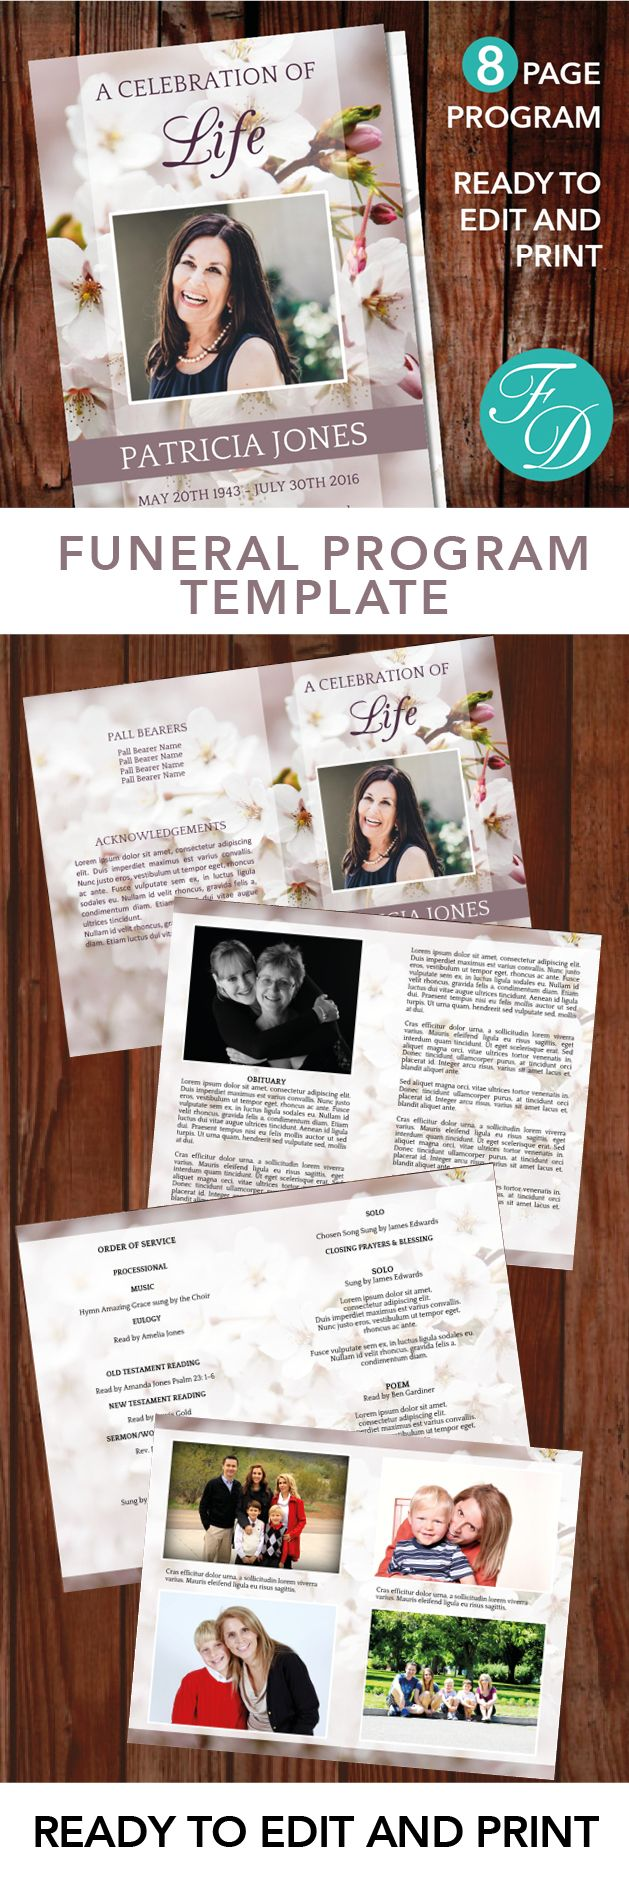 8 Page Printable Funeral program ready to edit & print Simply purchase your funeral templates, download, edit with Microsoft Word and print. #obituarytemplate #memorialprogram #funeralprograms #funeraltemplate #printableprogram #celebrationoflife